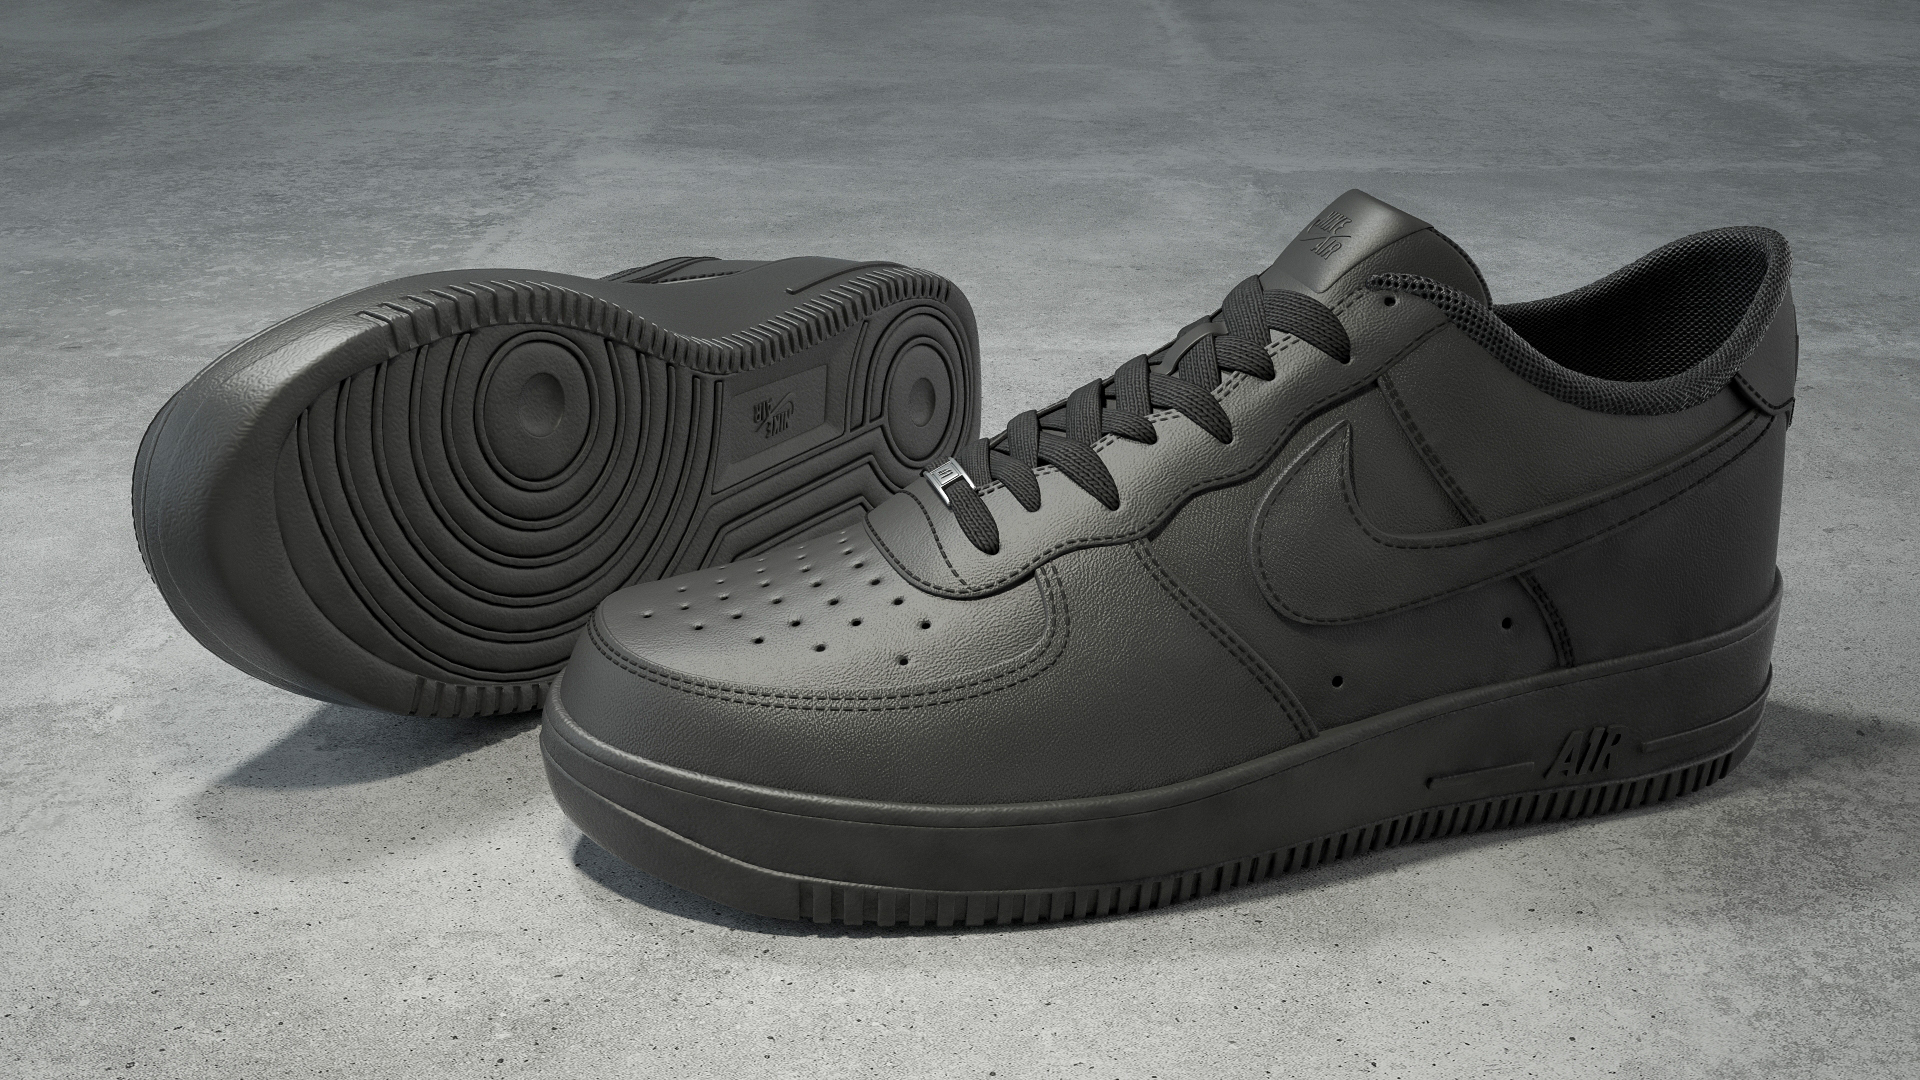 Nike Air Force 1 low black 3D model by